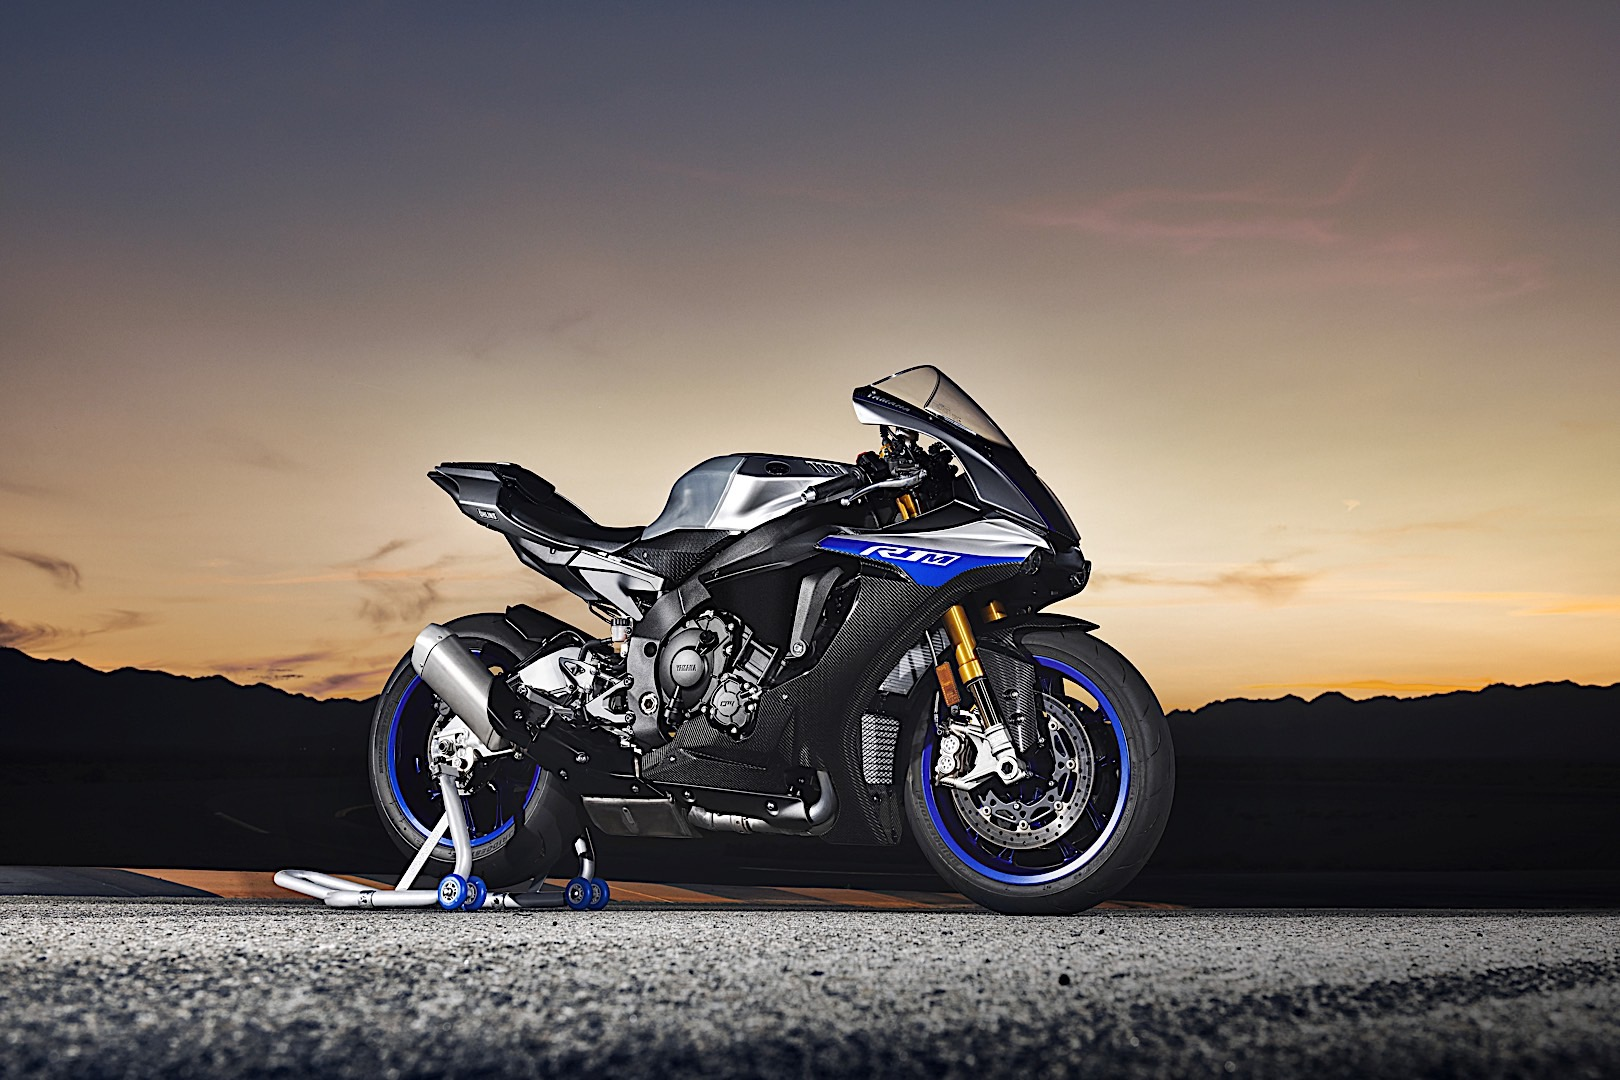 Yamaha Yzf R1m And Yzf R1 Get Performance Upgrades For 2018